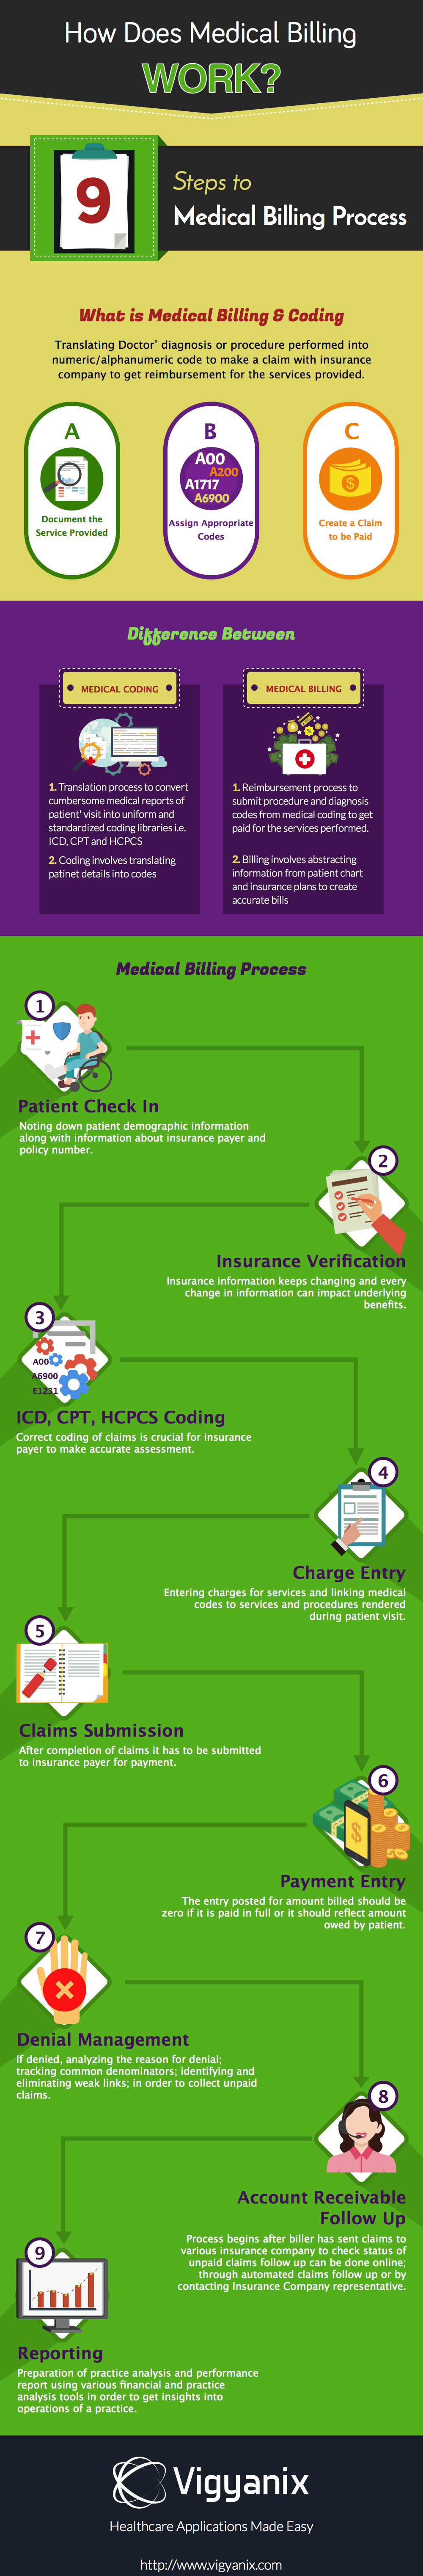 9 steps to medical billing process